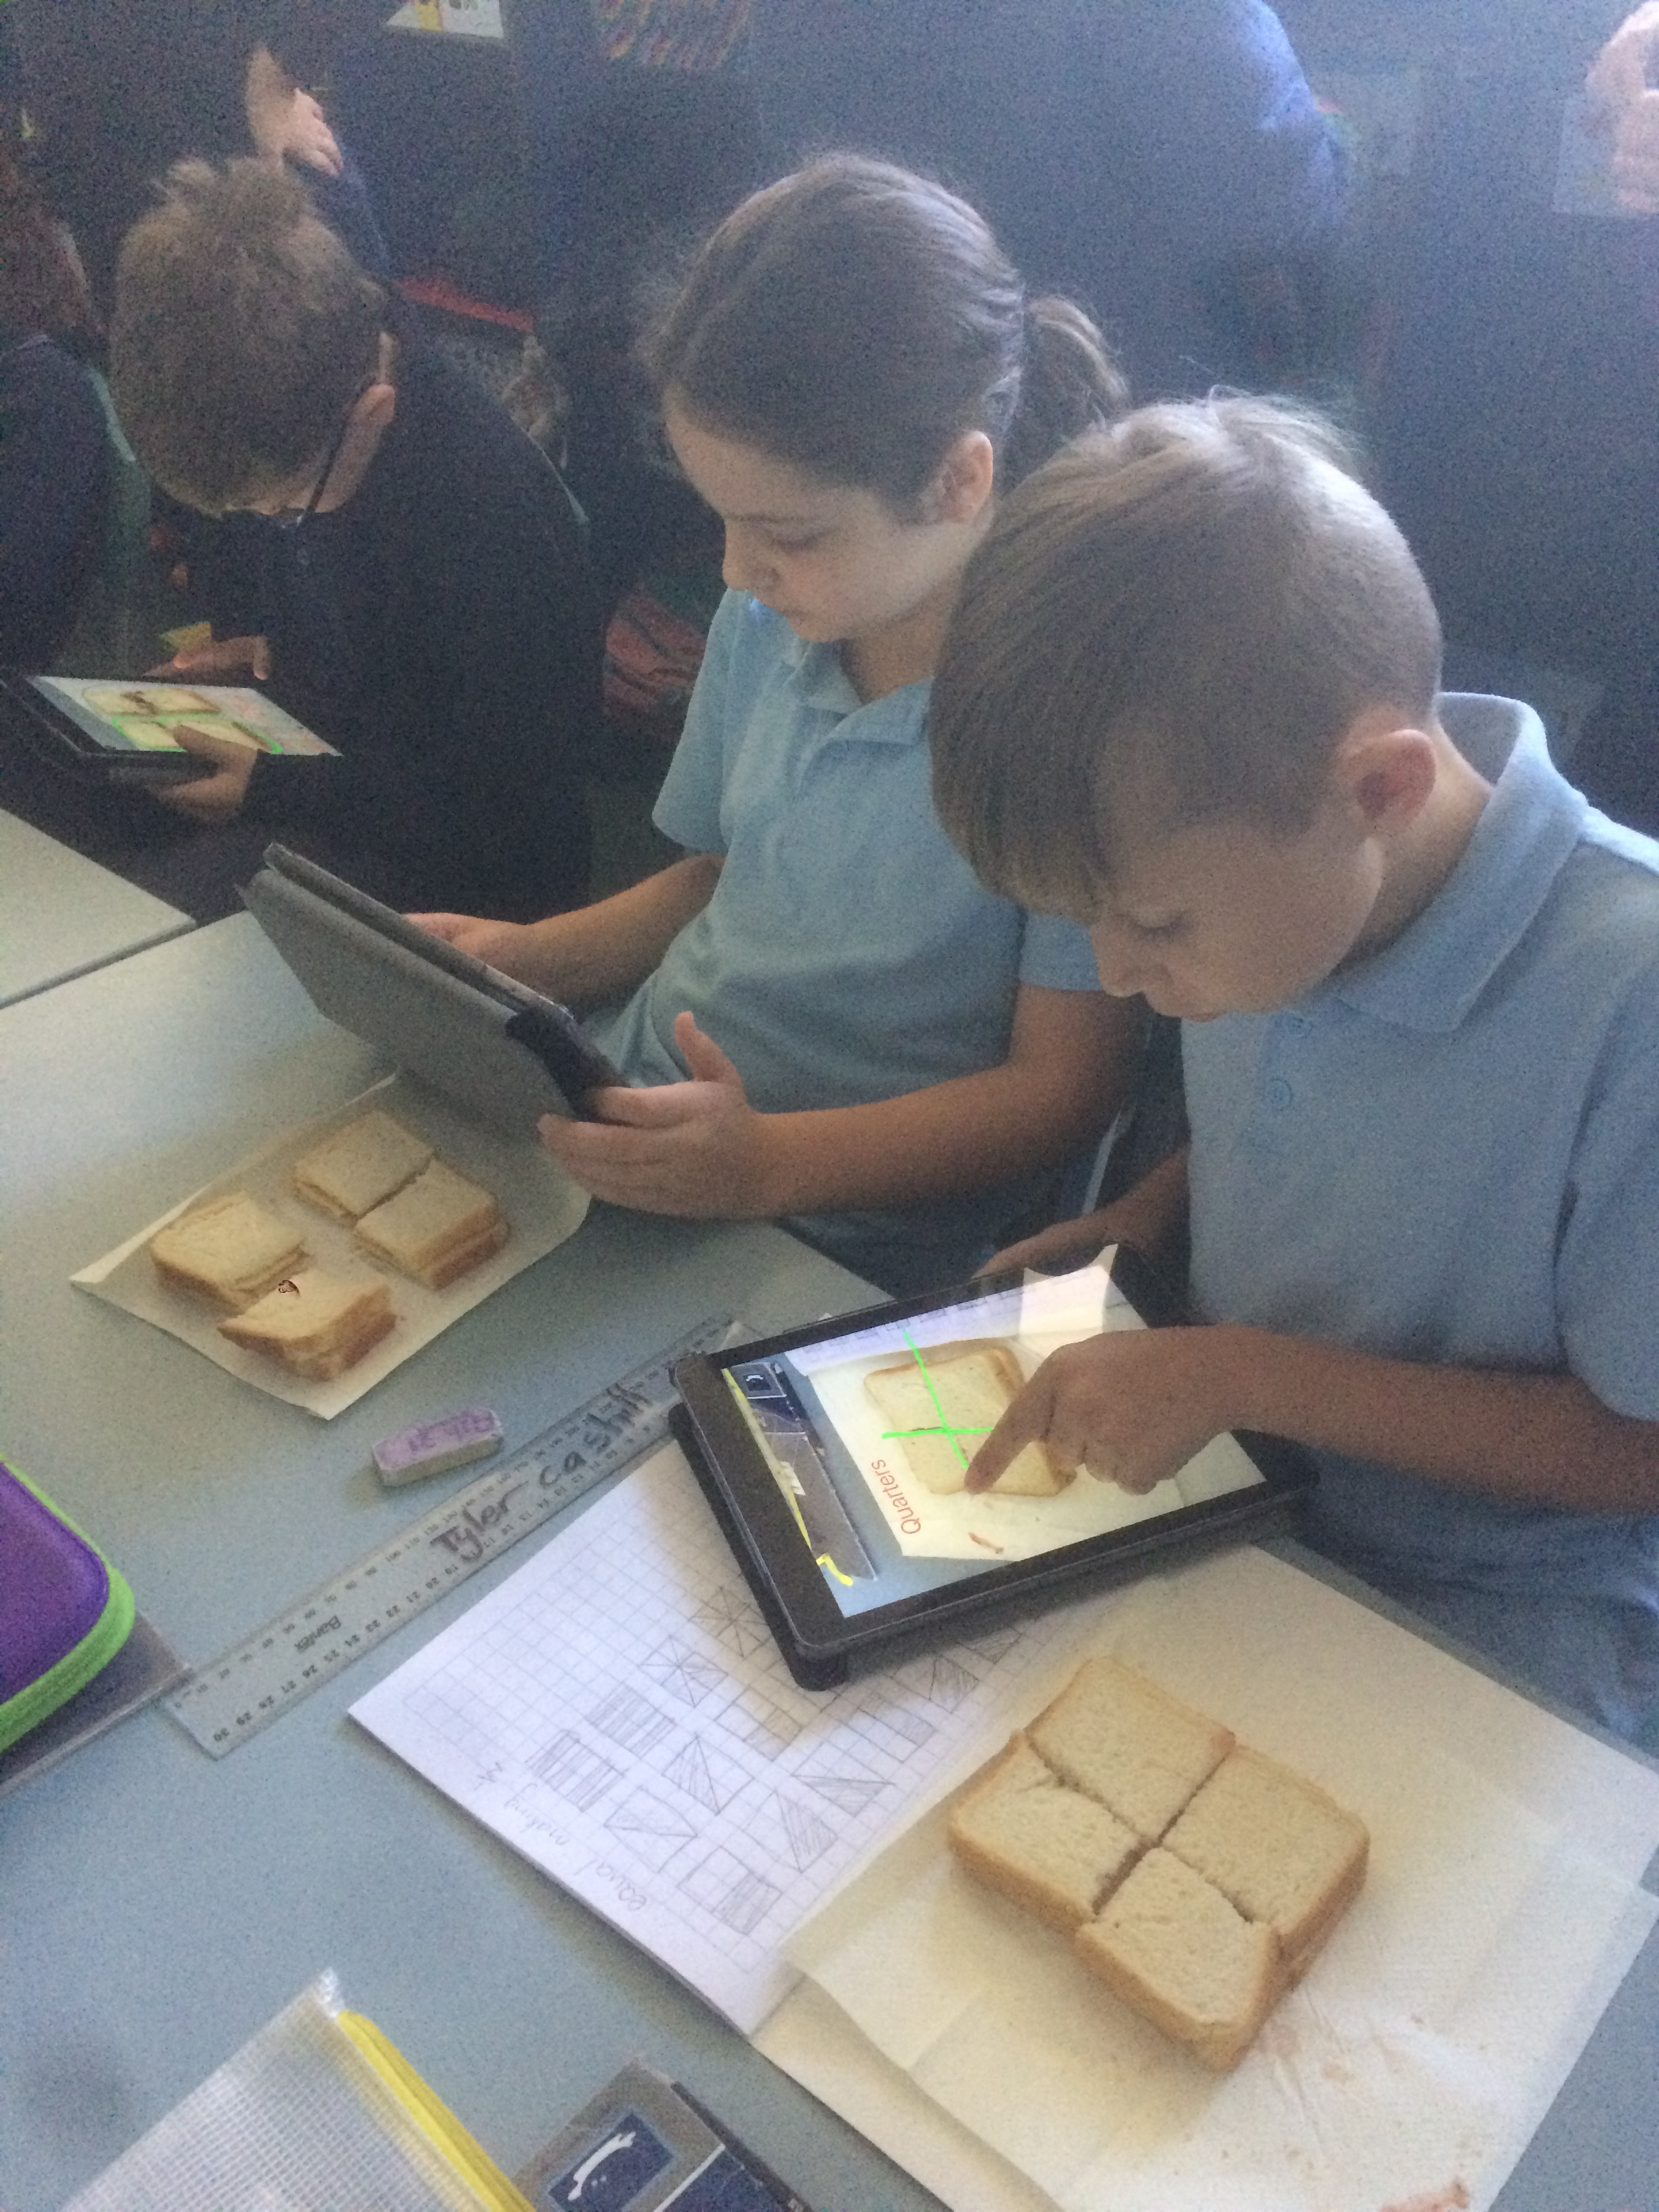 Making fraction sandwiches, taking an image with the iPad and then annotating the image to show our learning